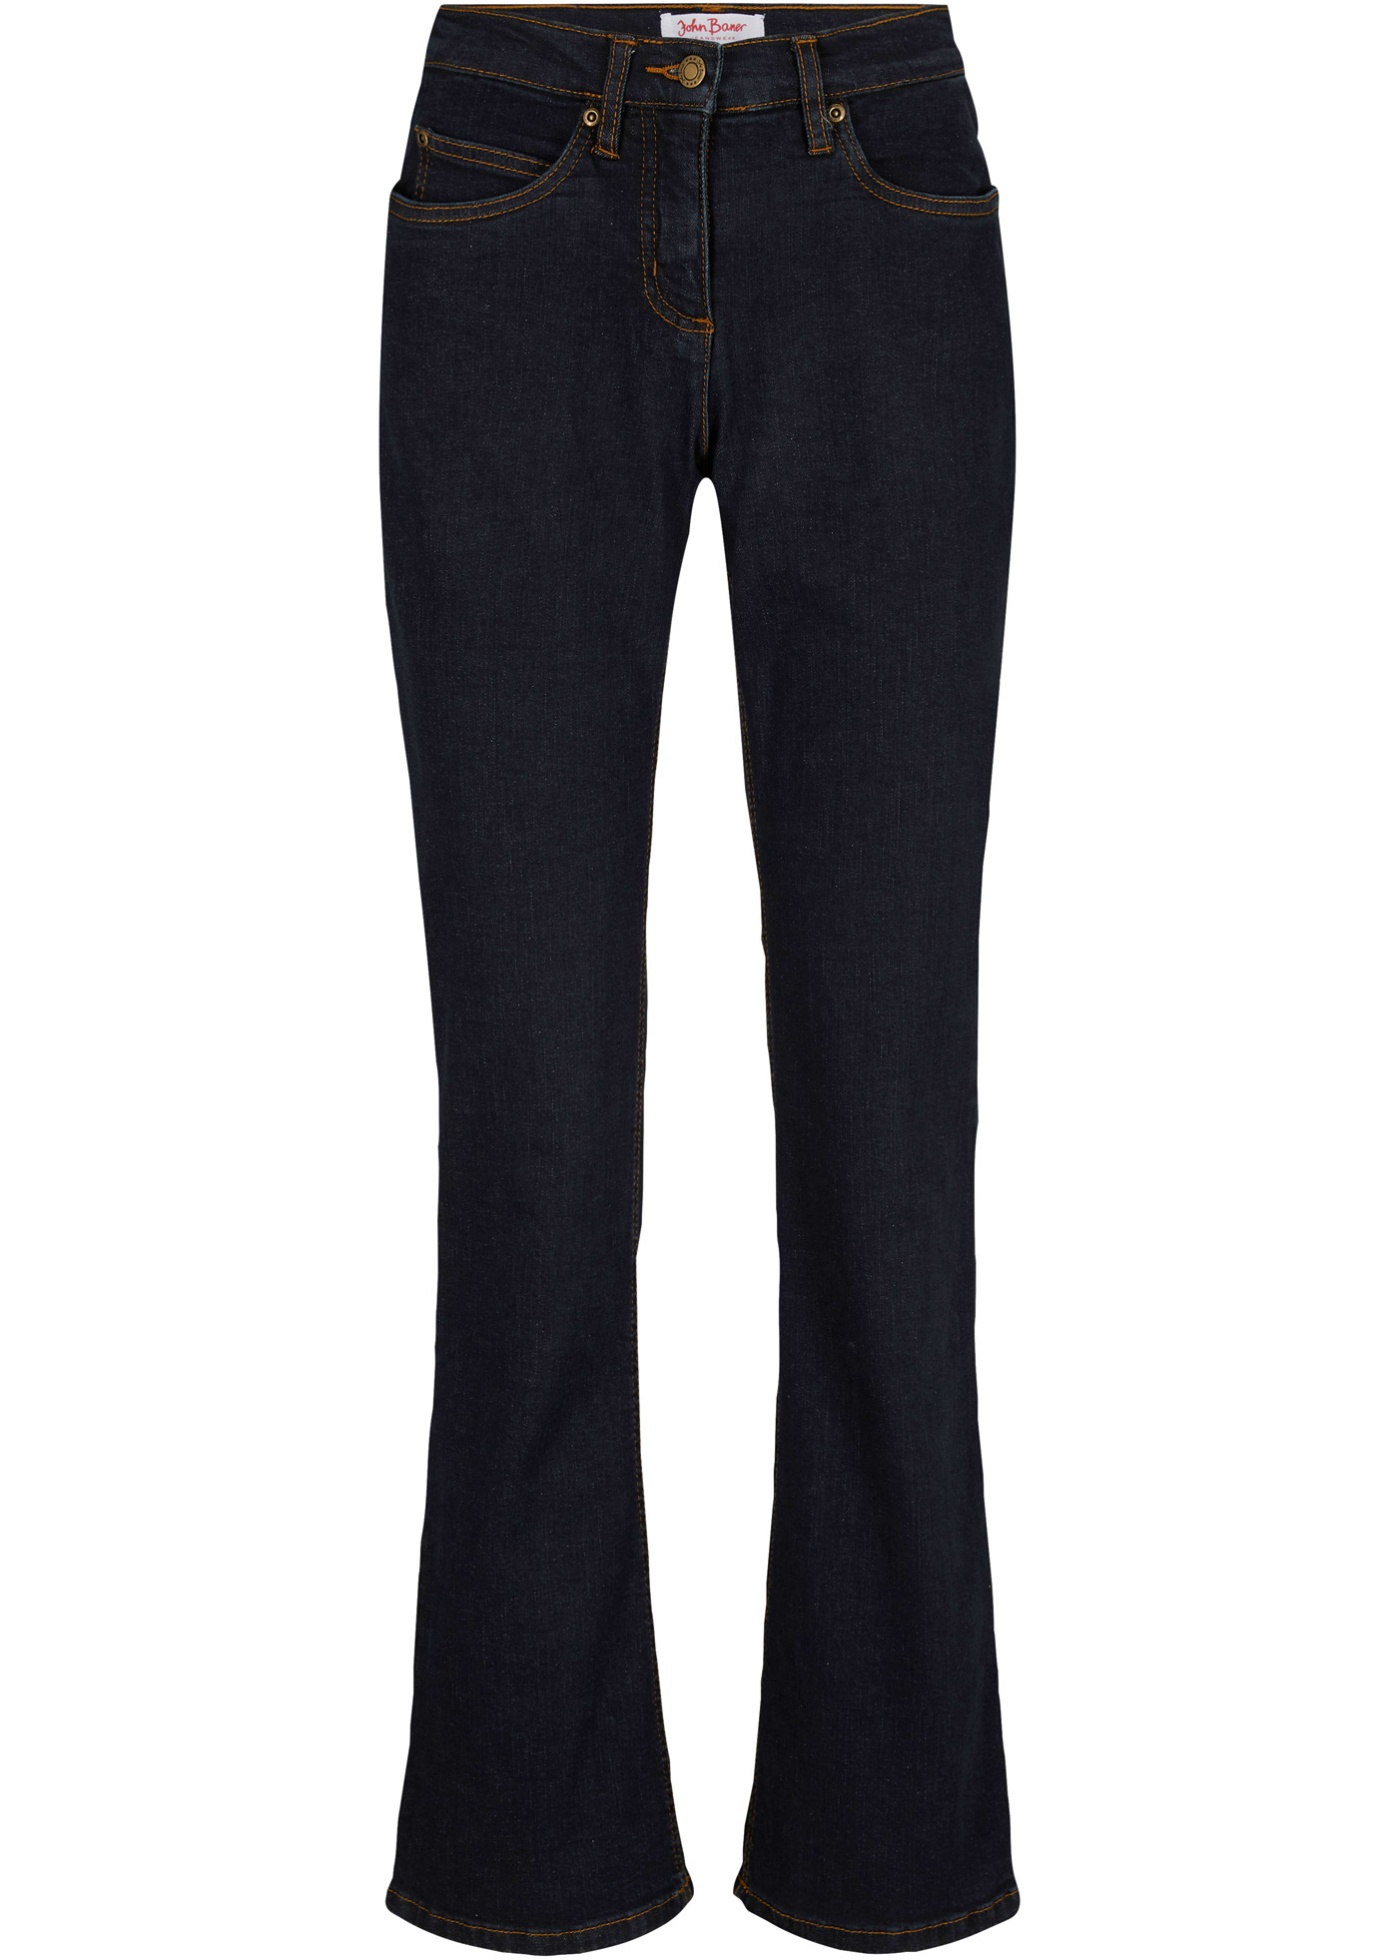 Image of Bestseller-Stretch-Jeans, Bootcut